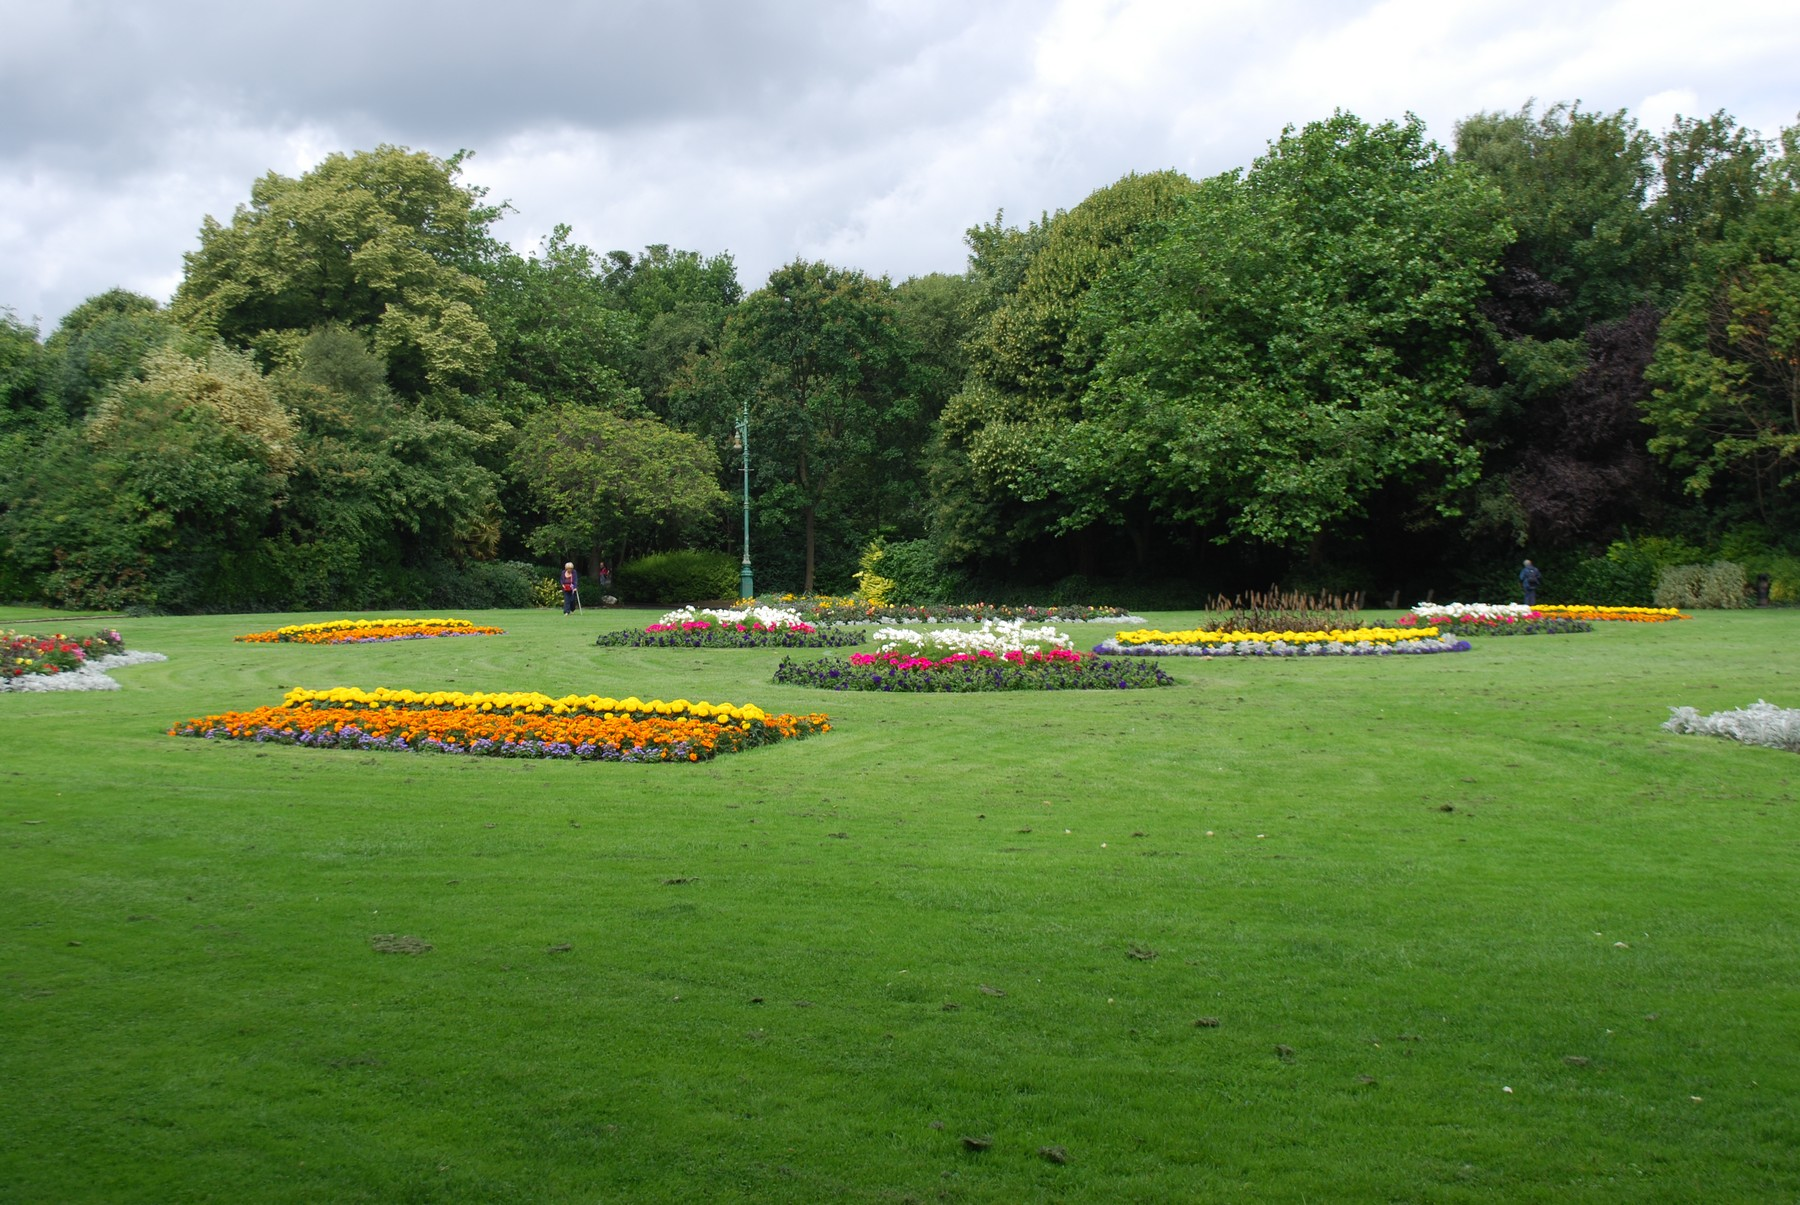 Dublin City Council Plans To Chop Down 300 Trees In Merrion Square